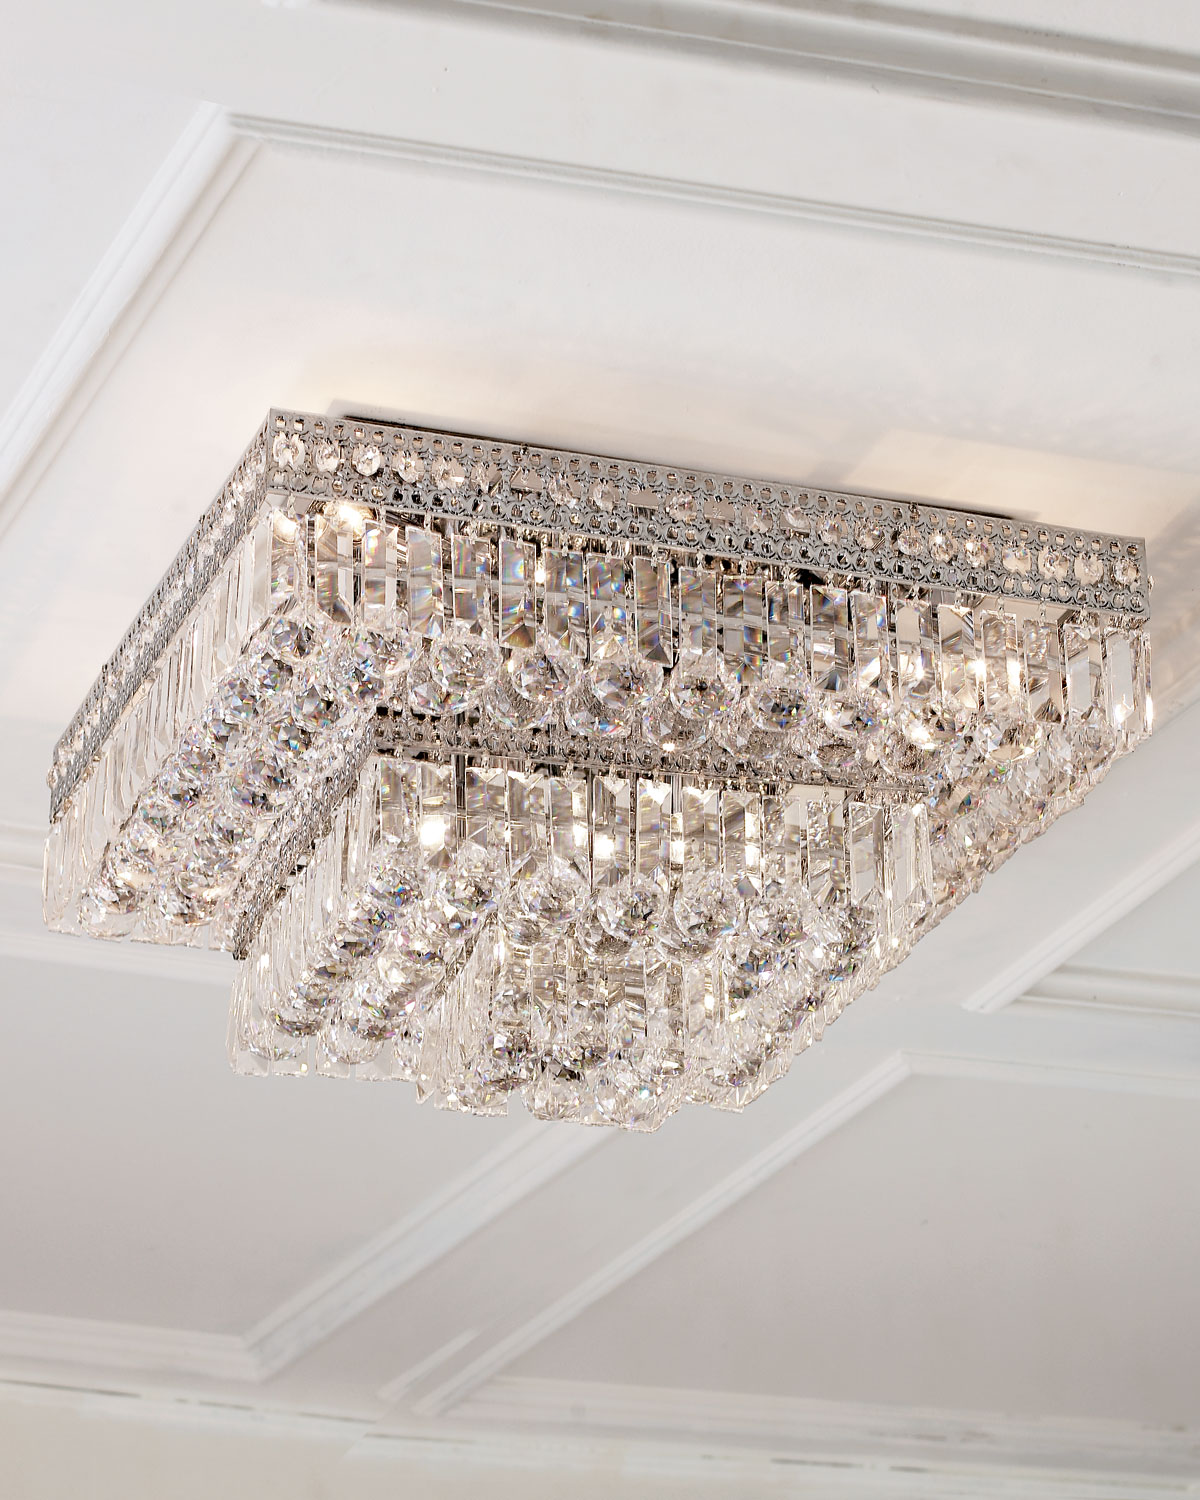 Neiman marcus lighting Flower Neiman Marcus Eightlight Crystal Flushmount Ceiling Fixture Neiman Marcus